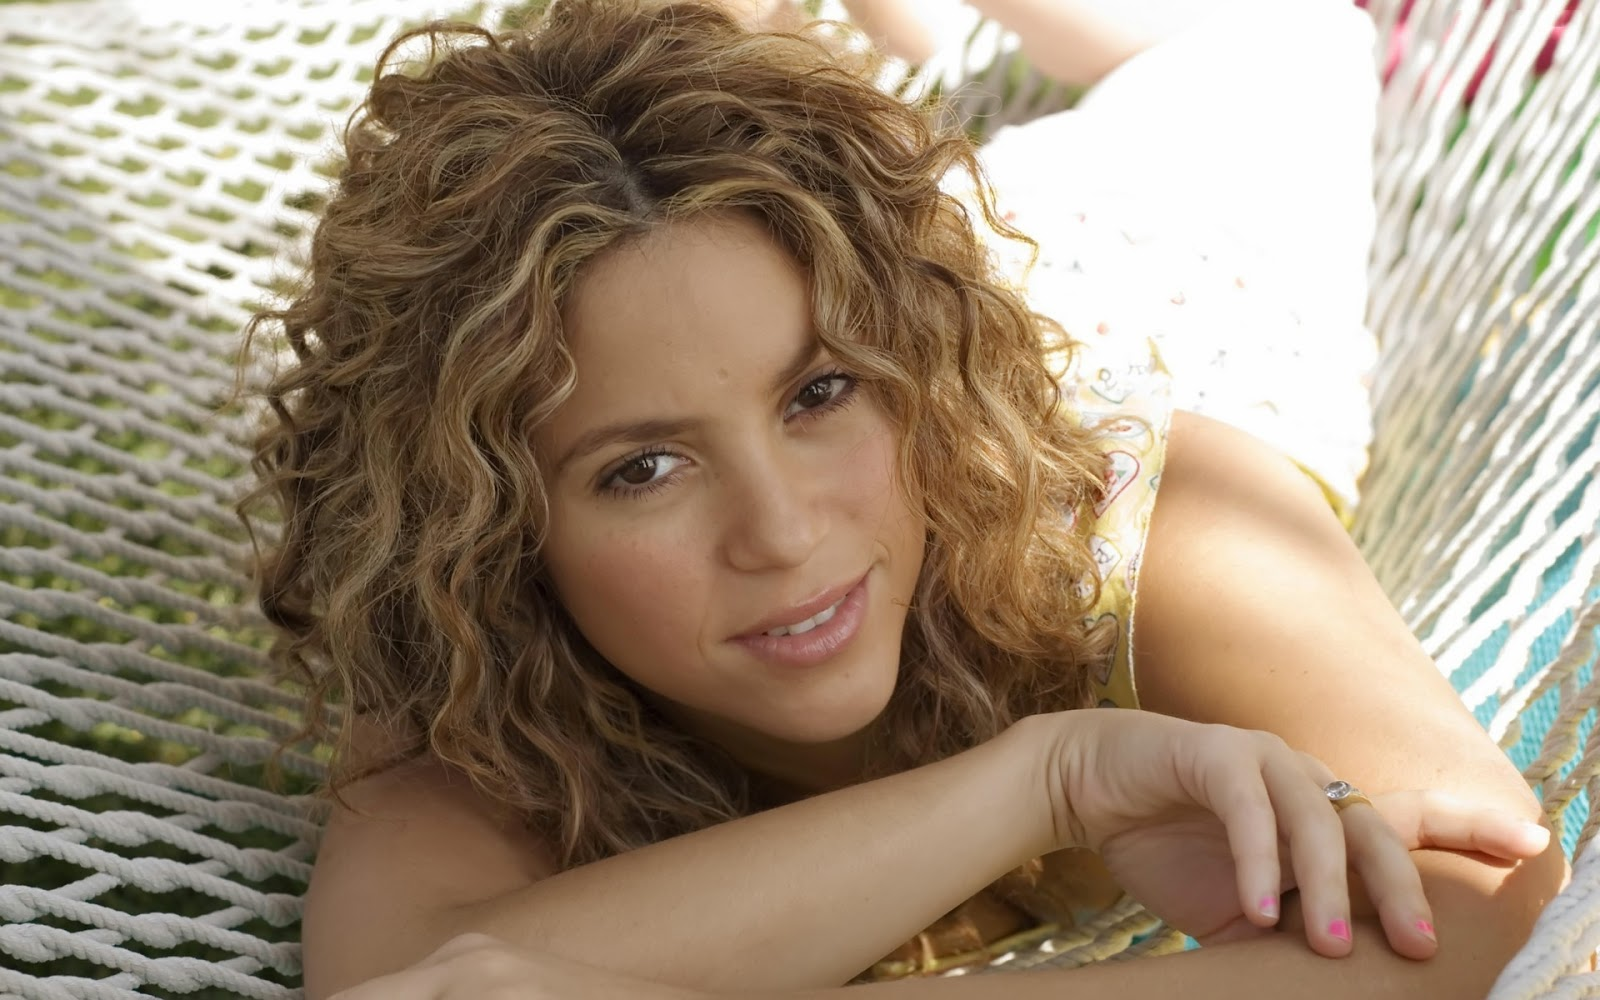 Cute Pics For Mobile Wallpapers Lovable Images Beautiful Shakira Hd Wallpapers Free